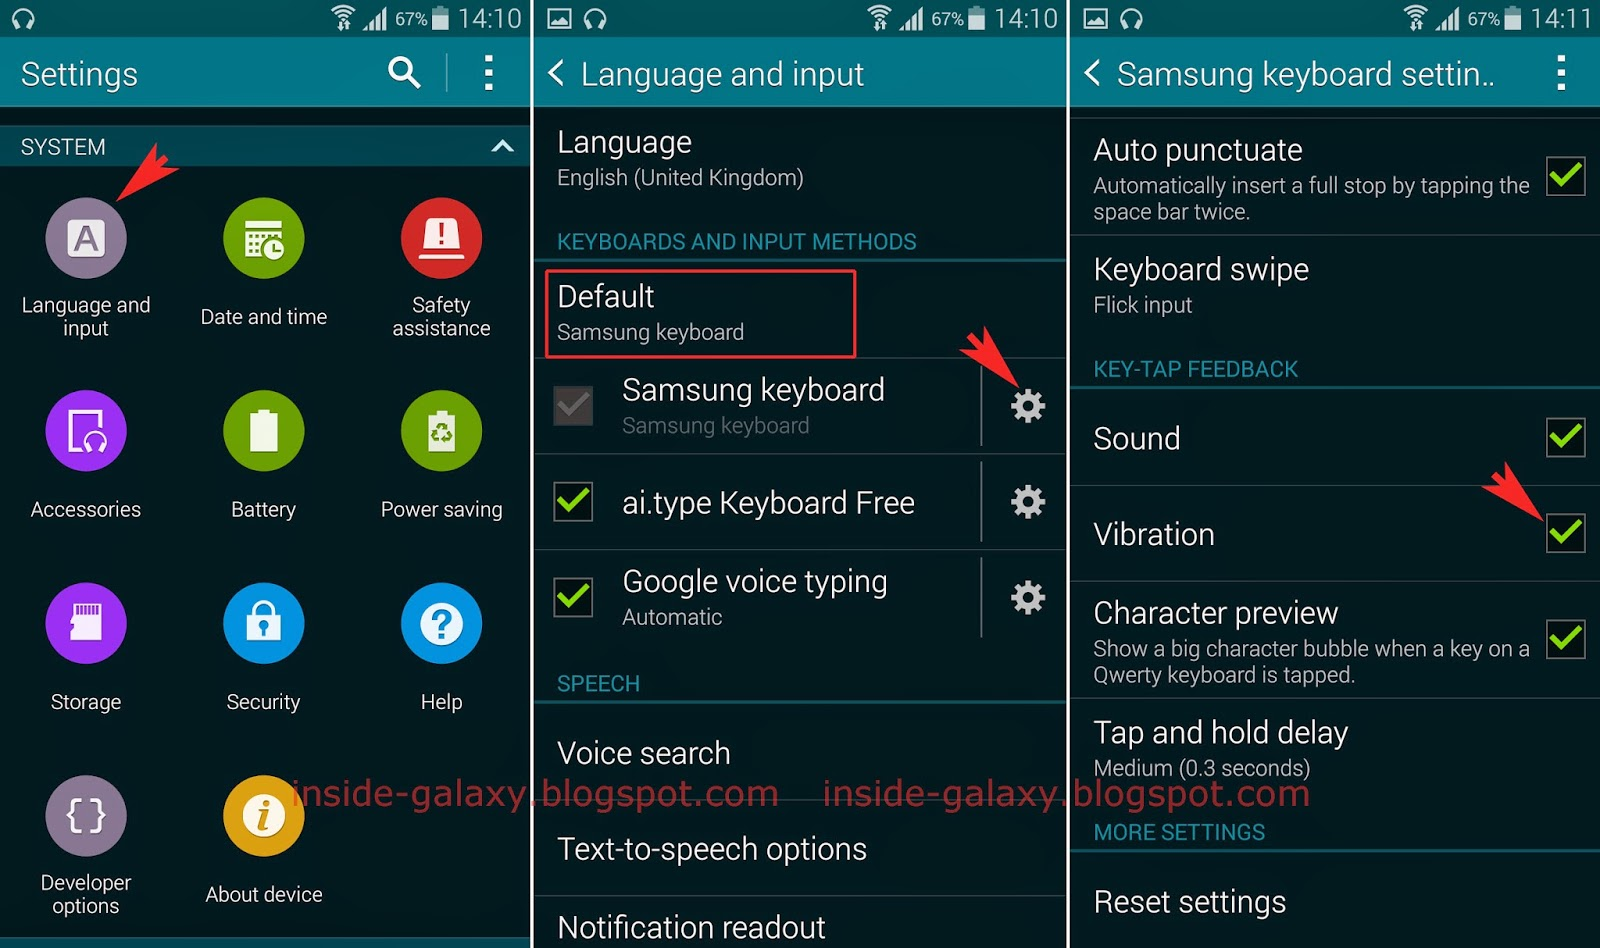 Method #1: From the Samsung keyboard settings